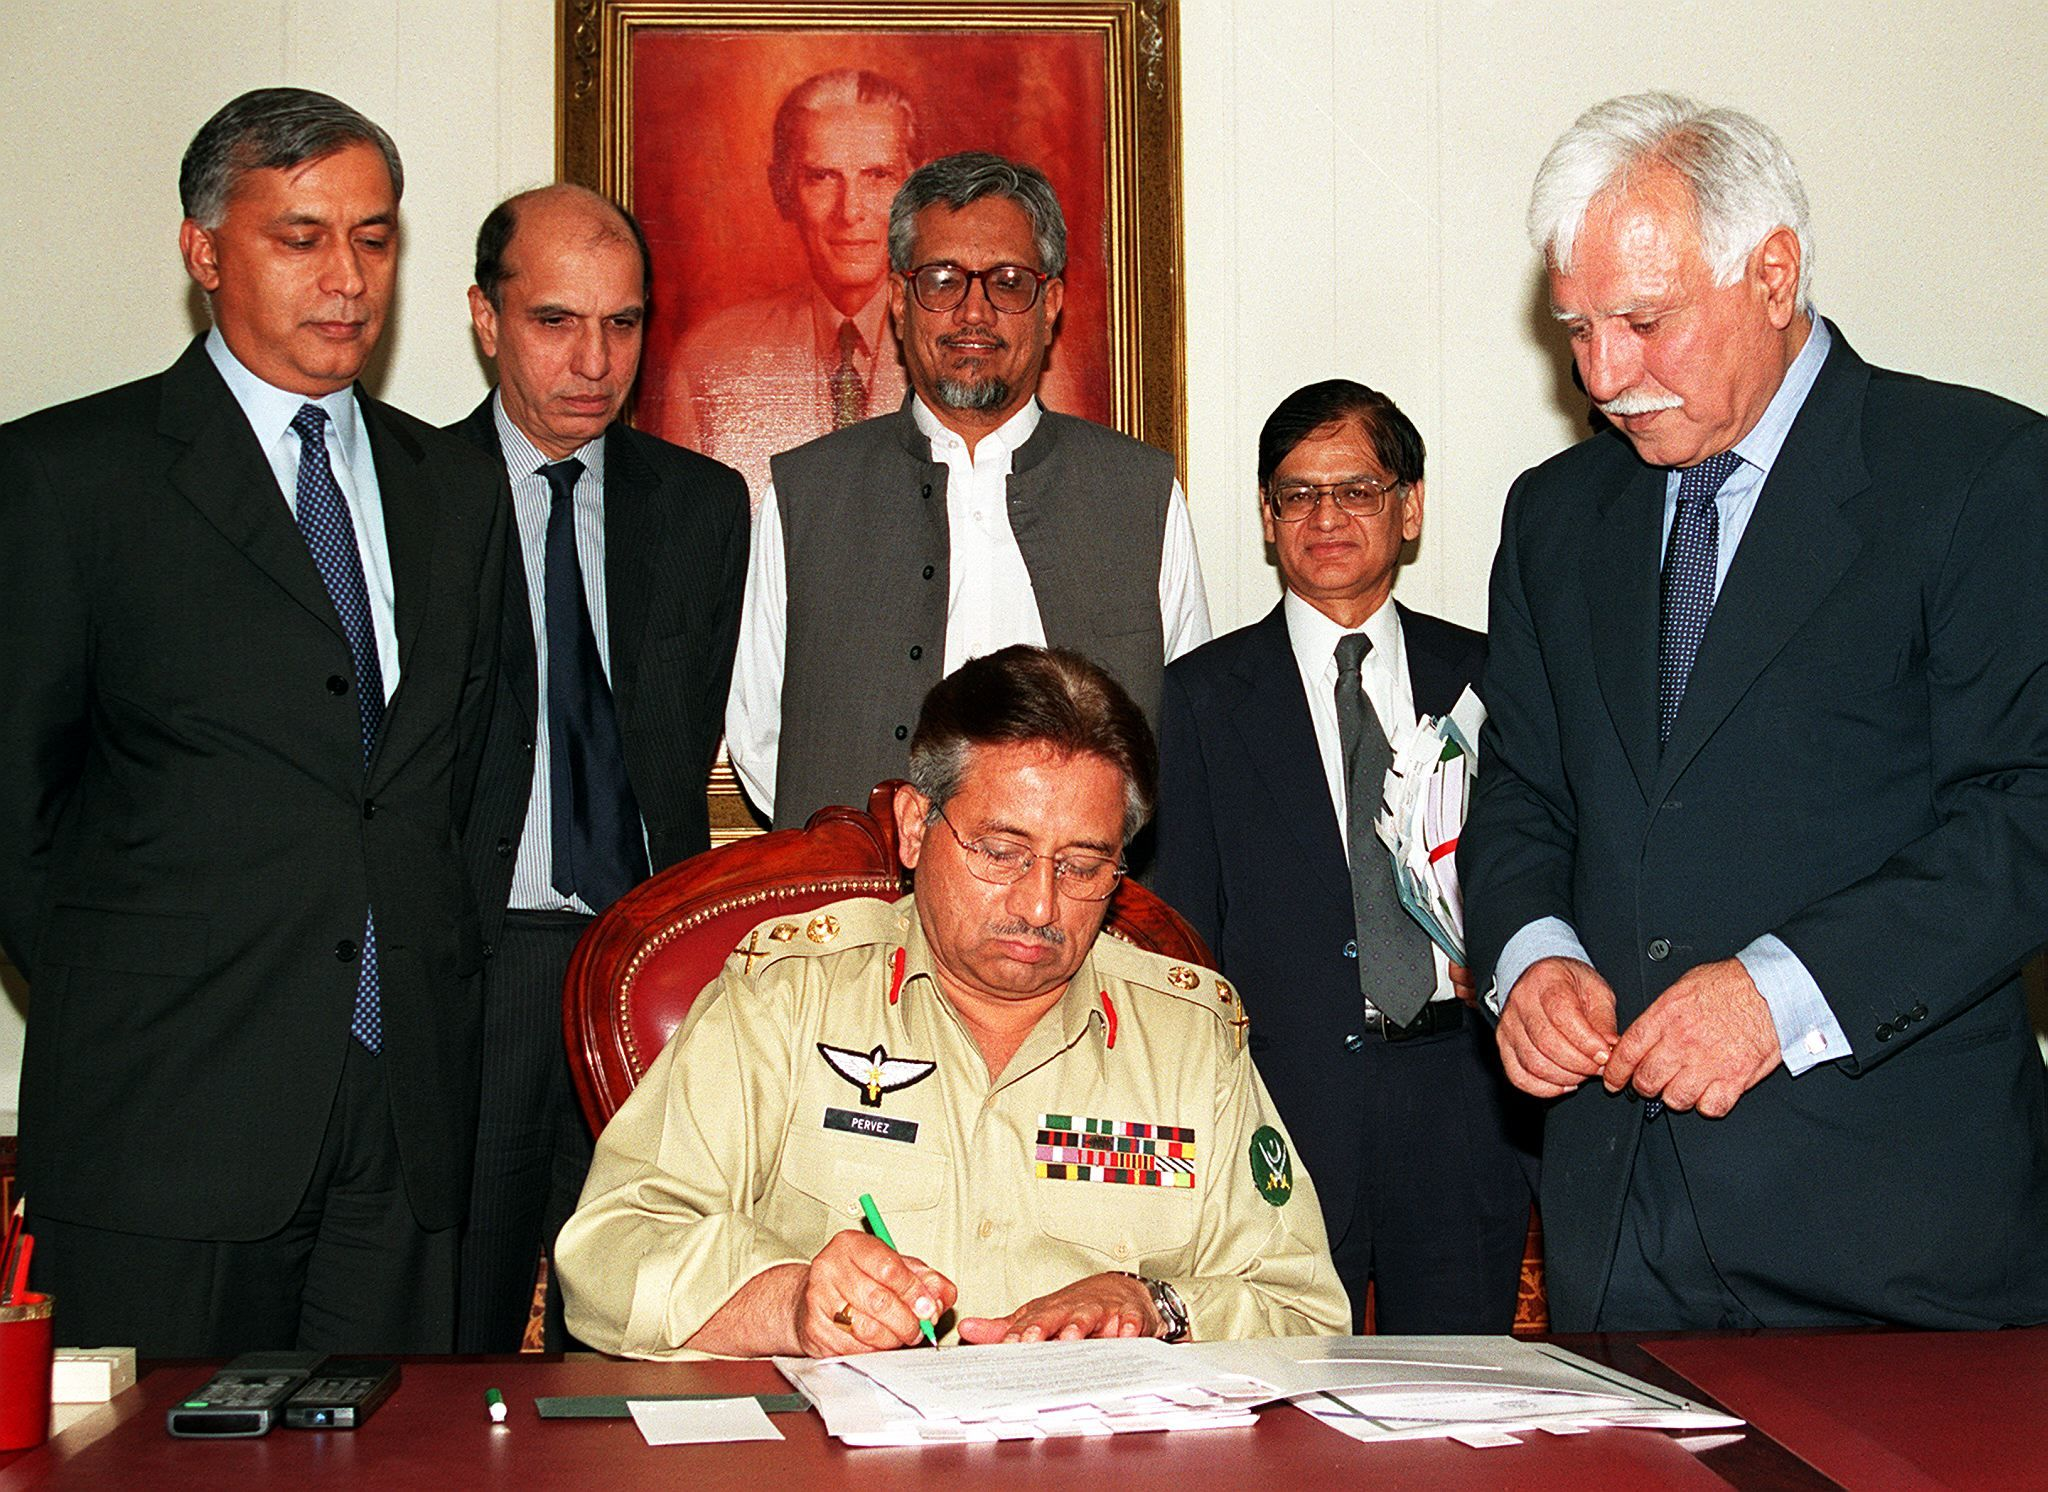 Chief Executive General Pervez Musharraf signs the national budget for the year 2001-02 in Islamabad, June 18, 2001. Finance Minister Shaukat Aziz (L) informed the cabinet that the major thrust of the new budget is on reviving investor-confidence and fostering growth in agricultural and industrial sectors to make the economy stand on its own feet. Others are unidentified finance ministry officials. — AFP